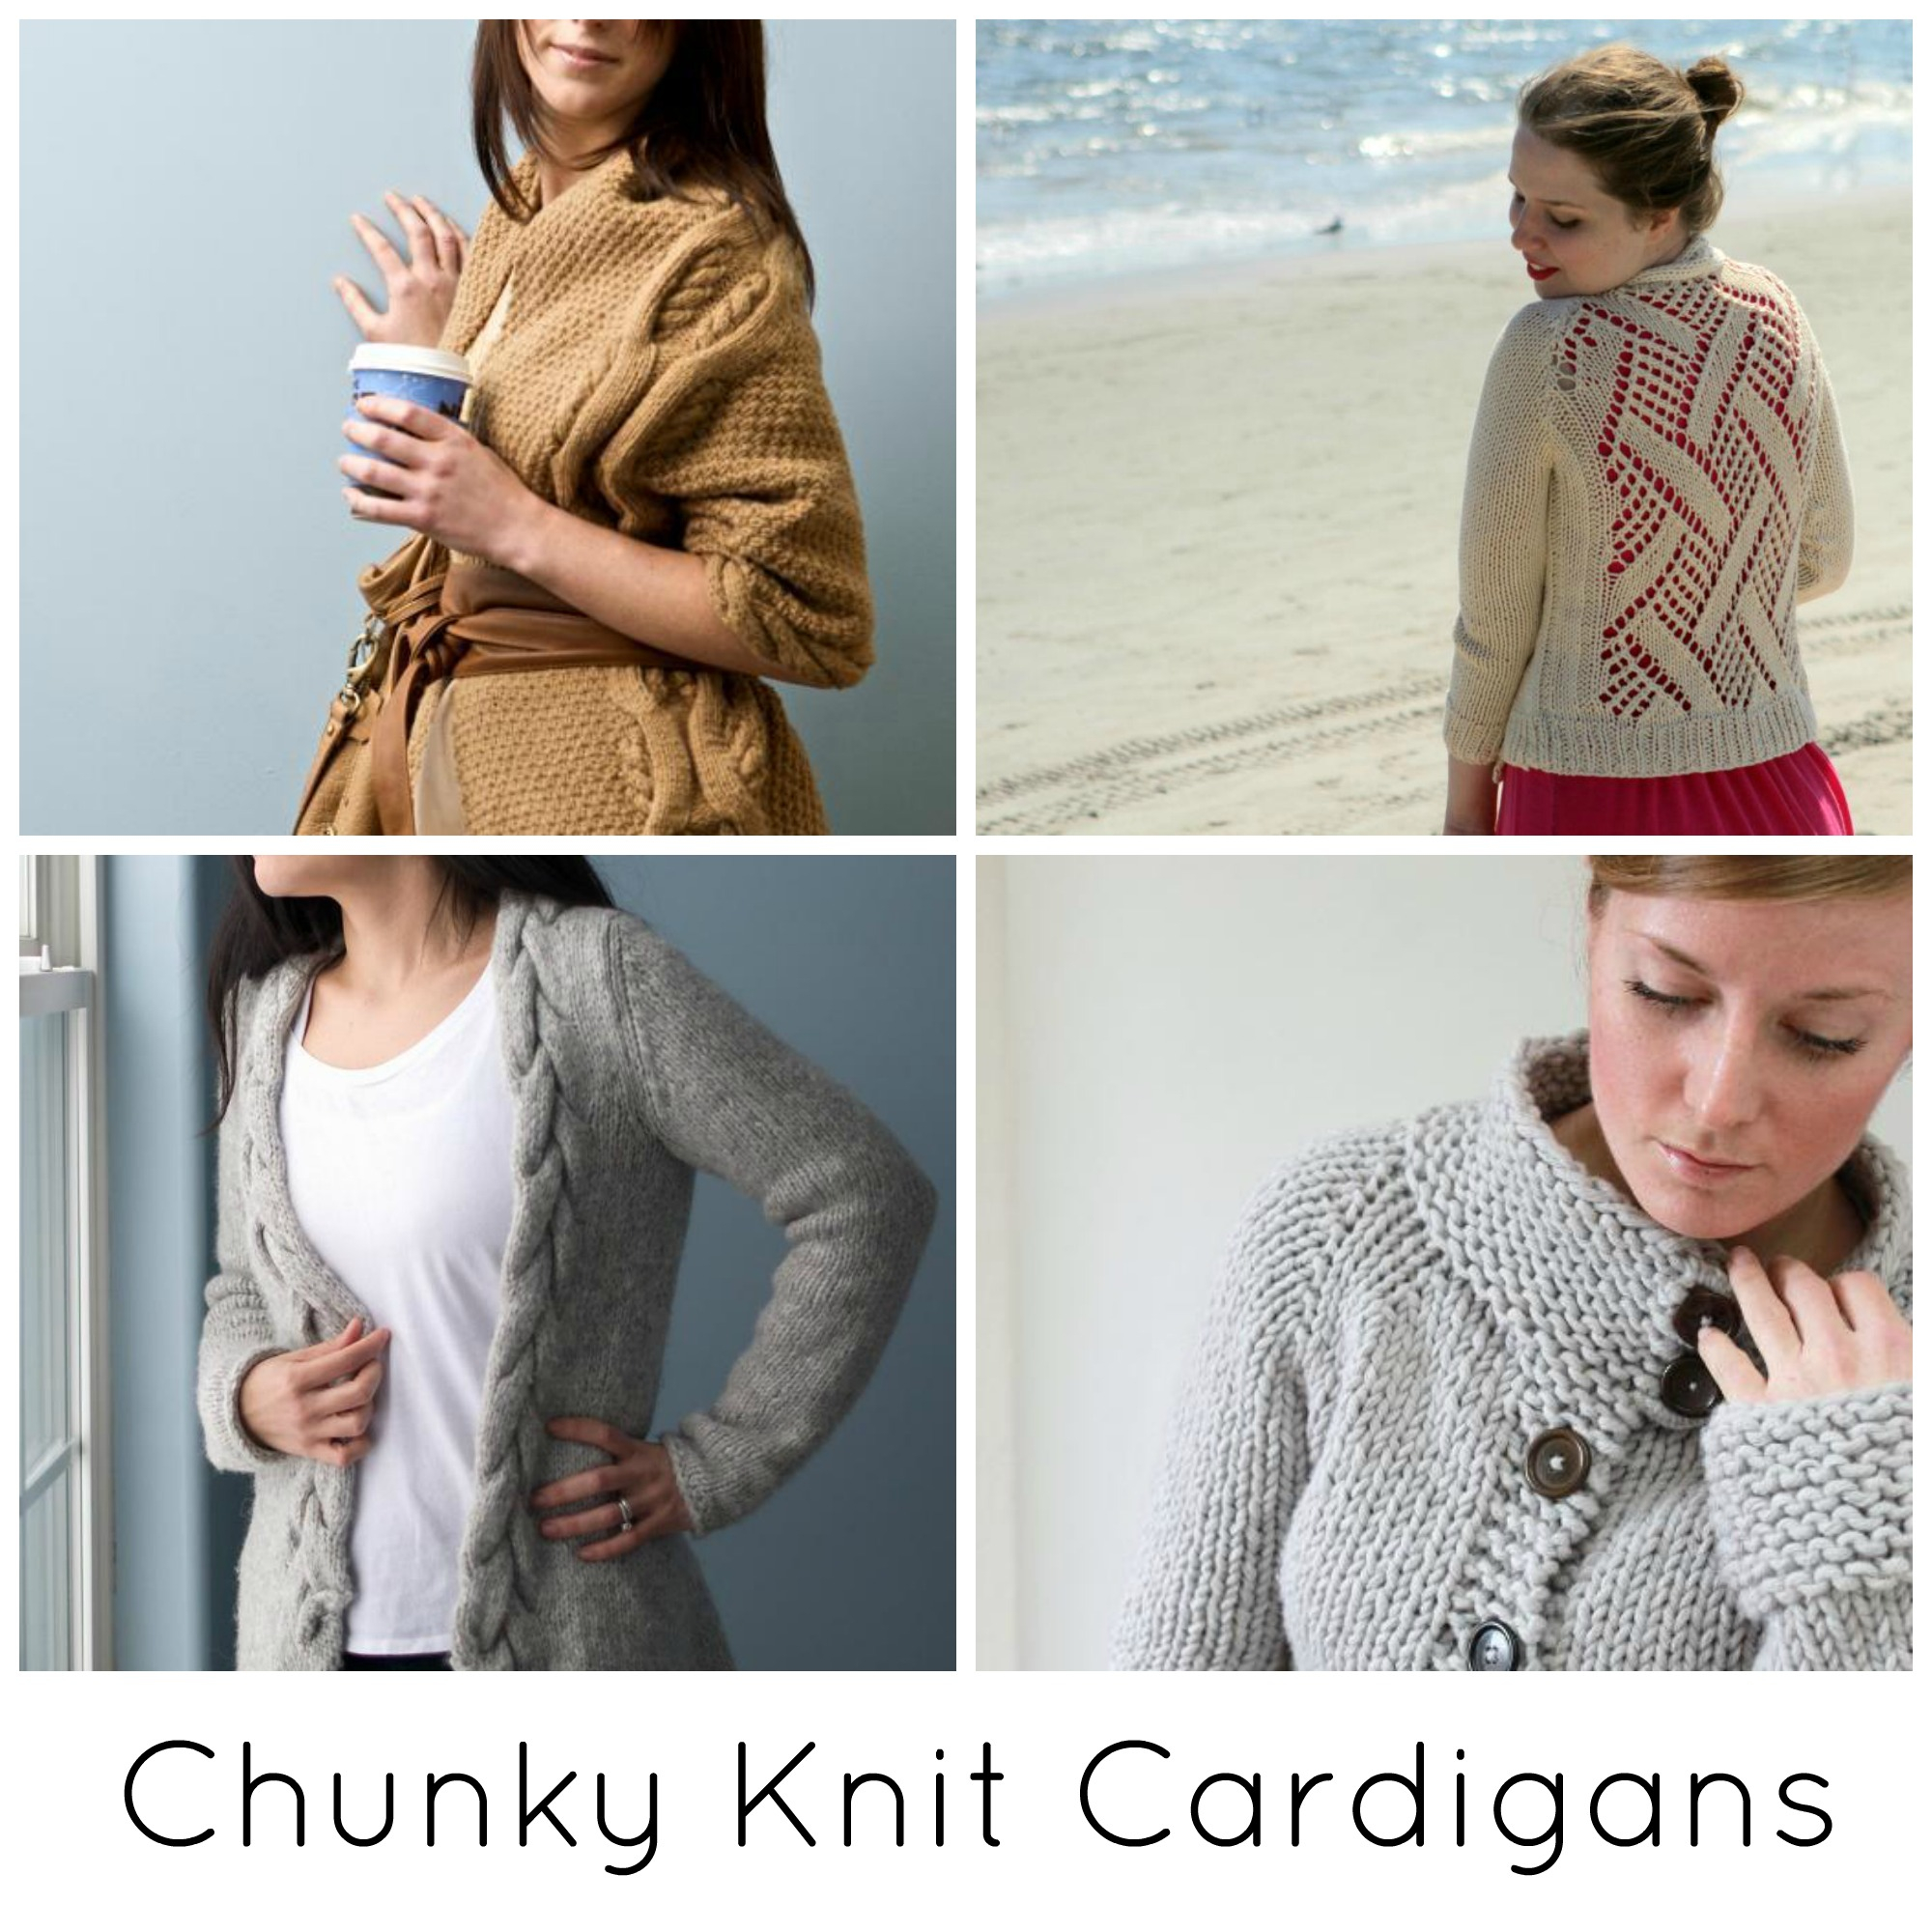 Knitted Jacket Patterns Free The Coziest Chunky Knit Cardigan Patterns Ever